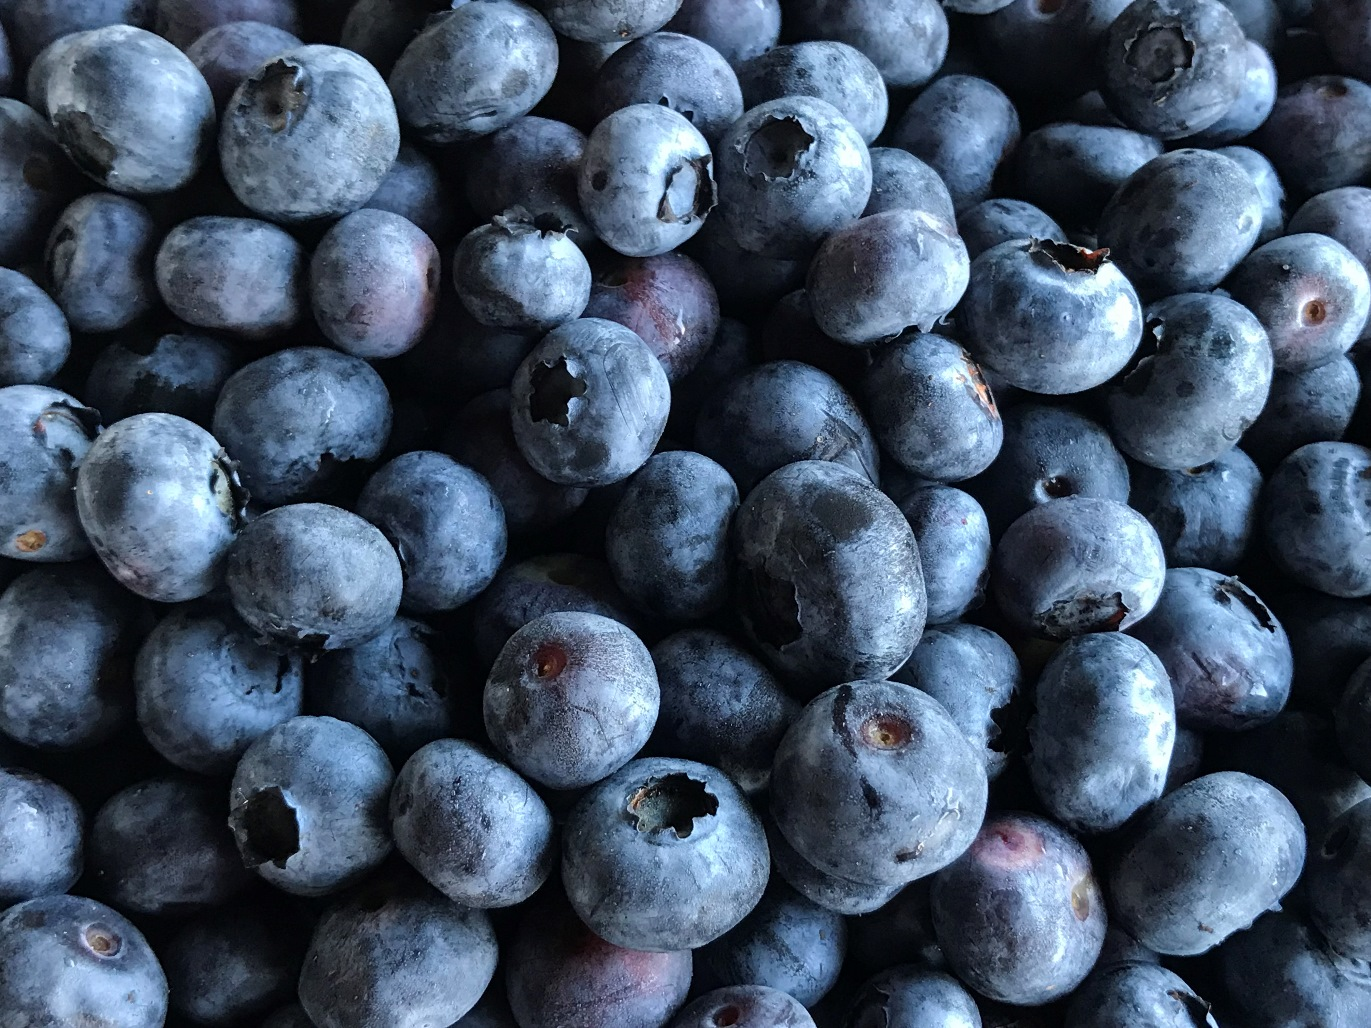 We Also Have Great Frozen Blueberries Available The Price Is 4 65 Per Pound